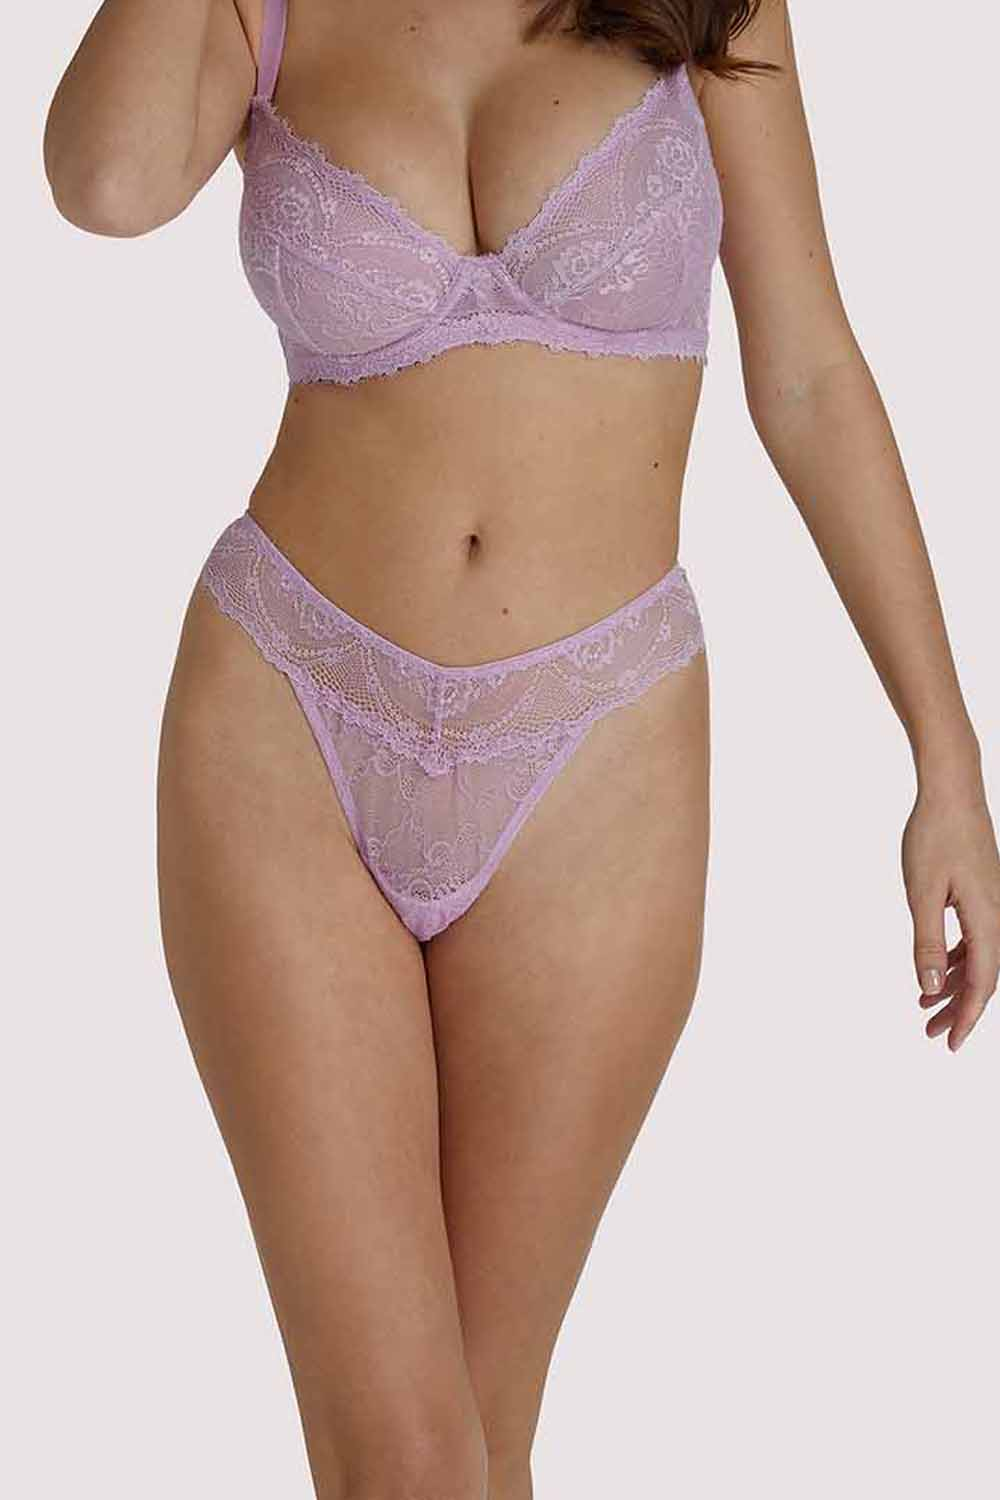 Wolf & Whistle Ariana Lilac Everyday Lace Thong UK 8 / US 4